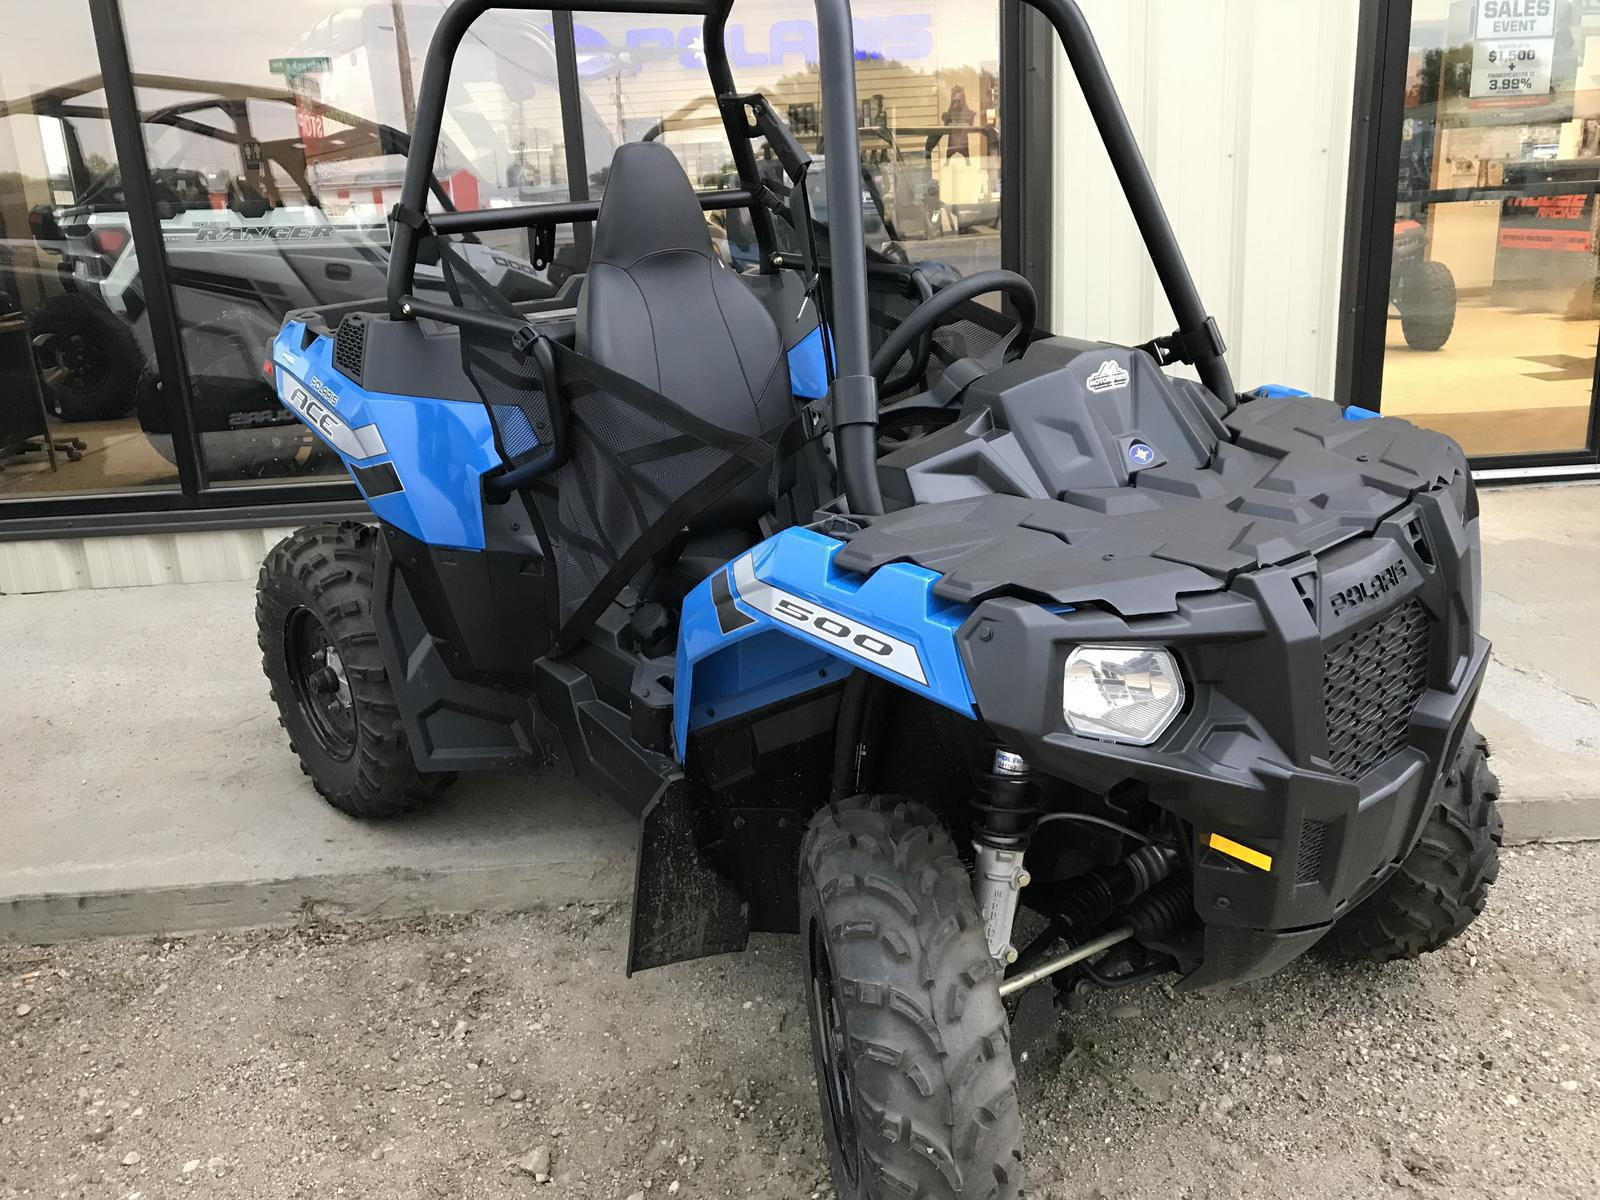 Polaris Ace For Sale >> 2019 Polaris Industries Polaris Ace 500 Velocity Blue